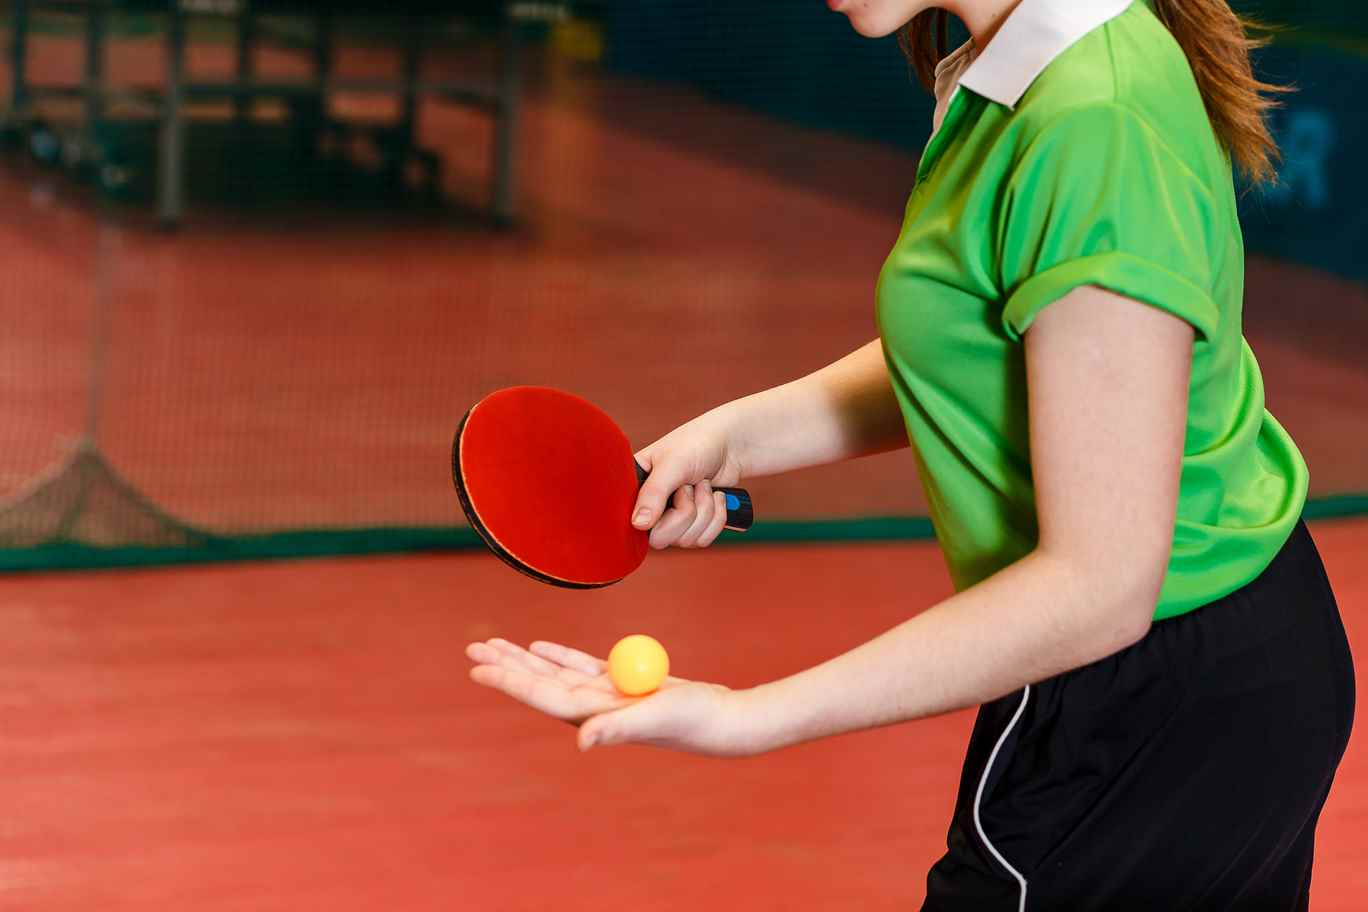 How to Upgrade Your Table Tennis Racket Based on Your Skills